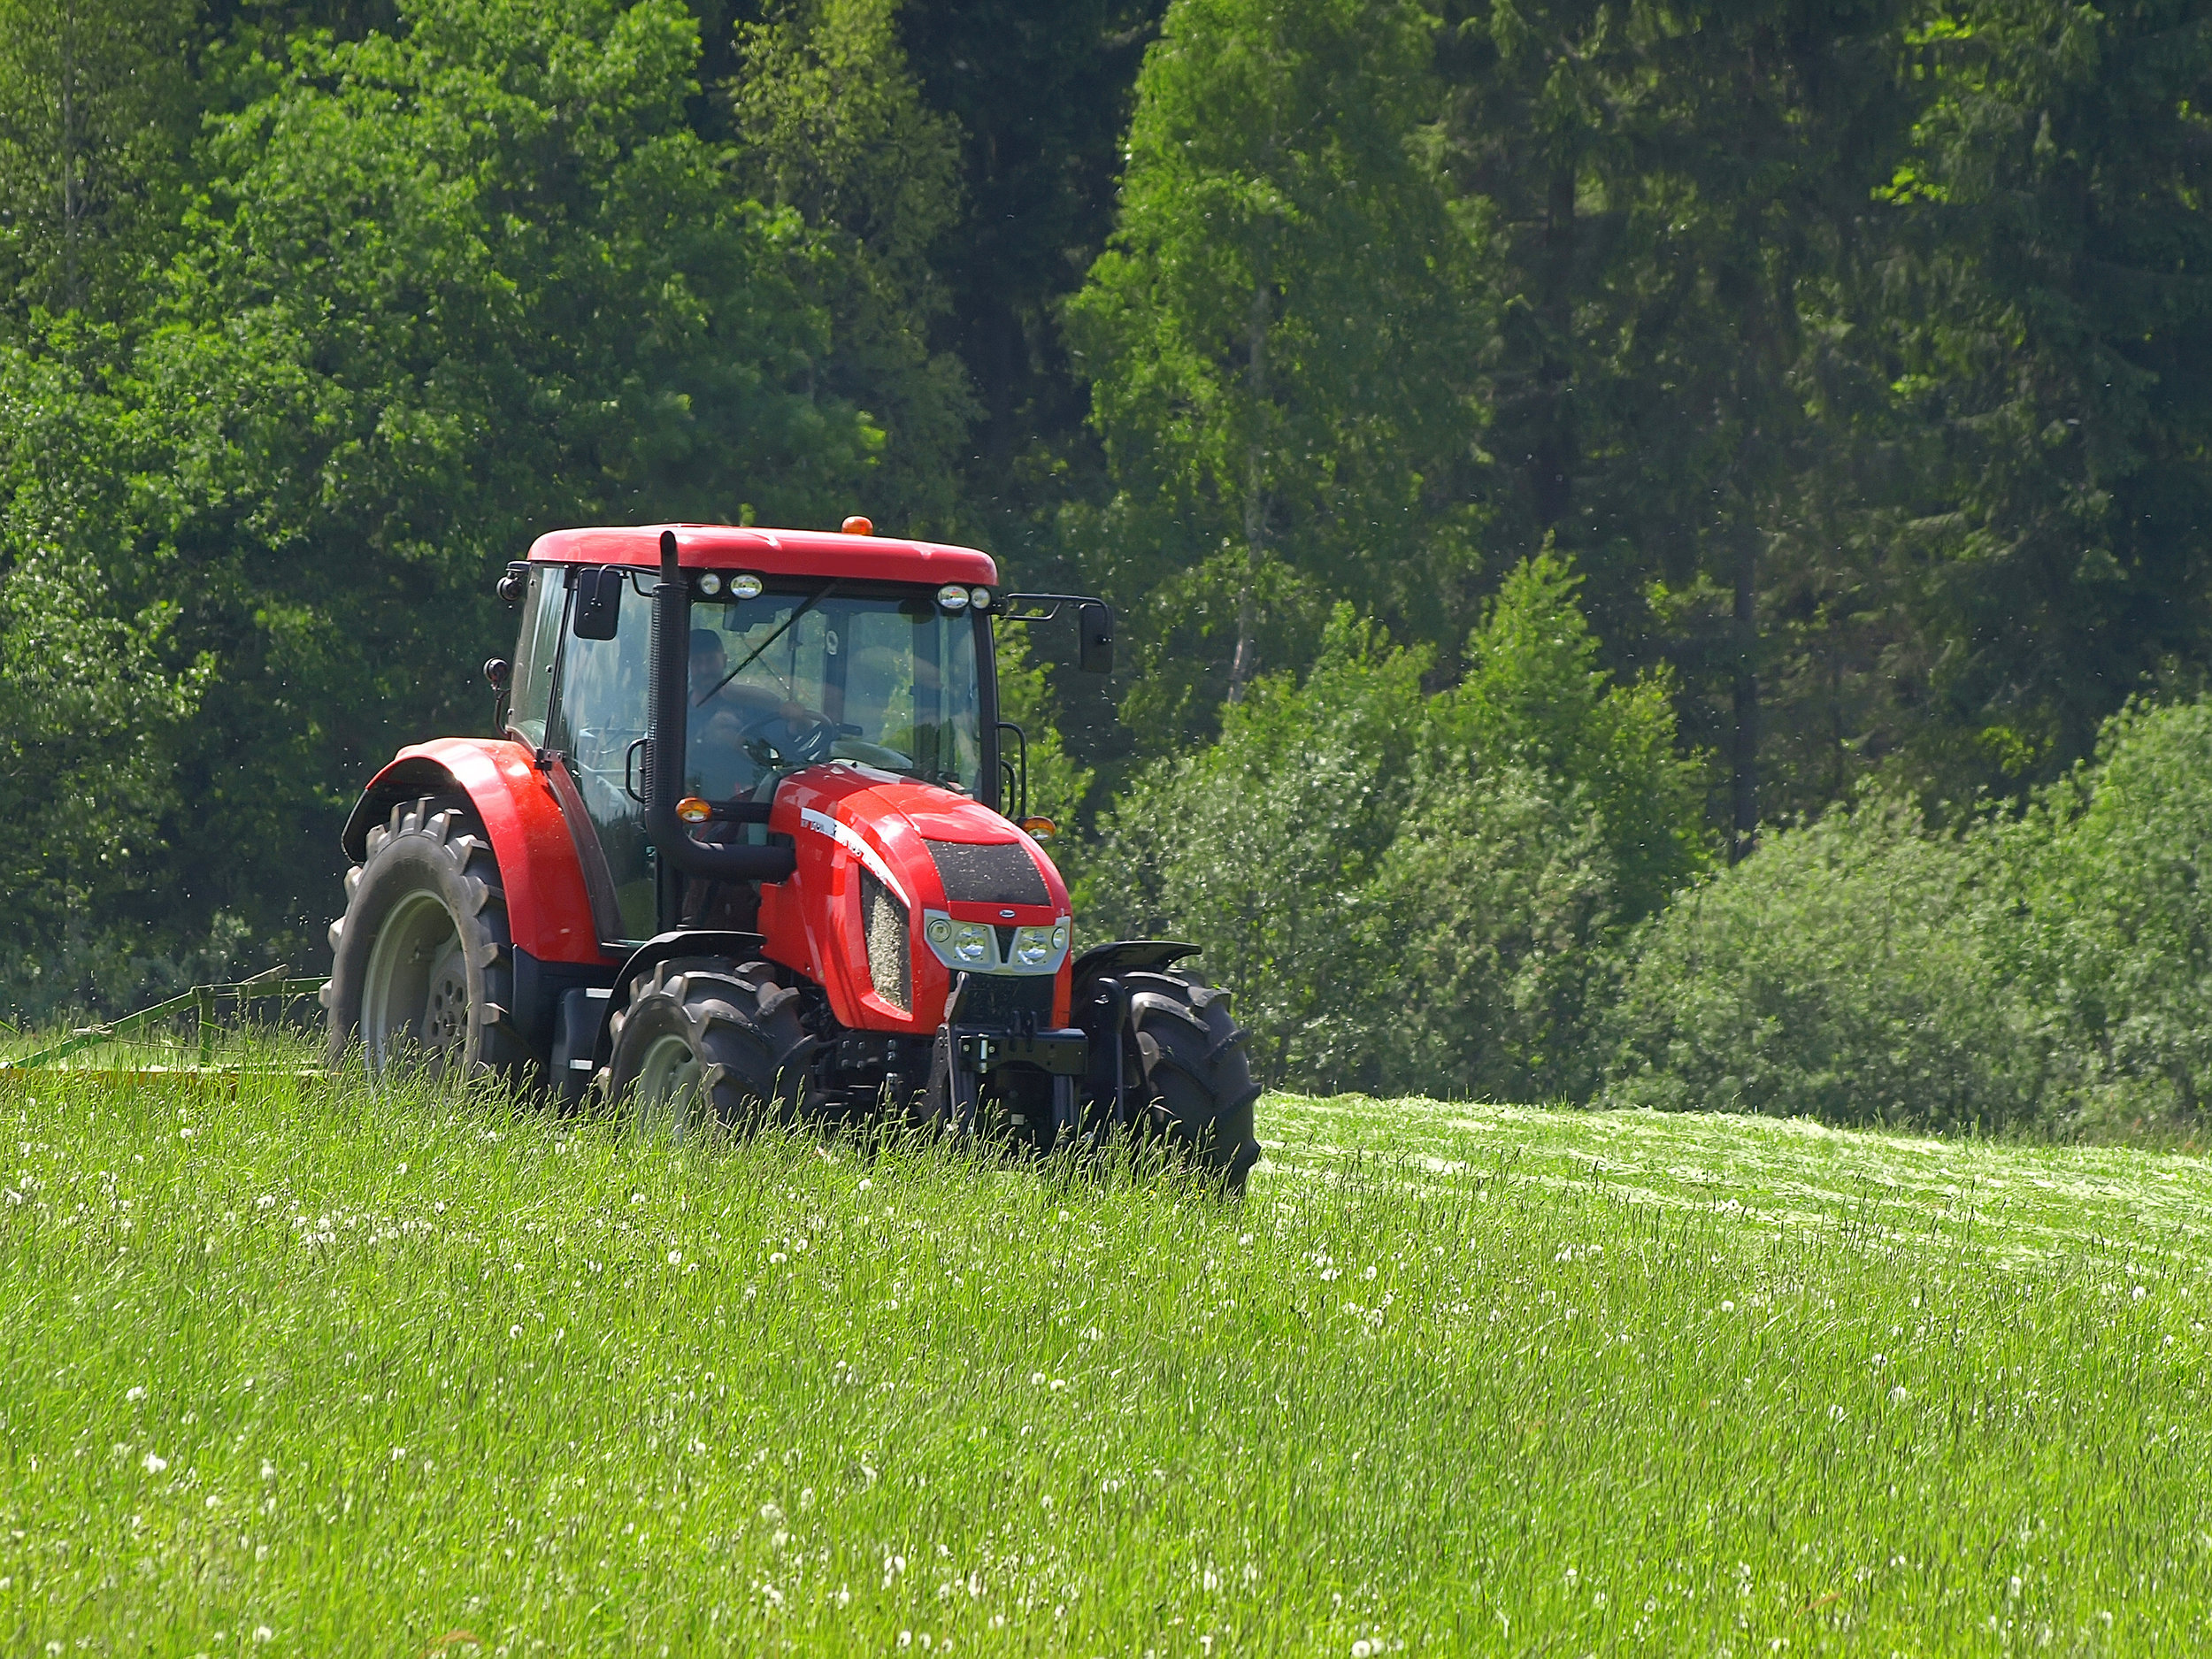 Vegetation Maintenance with Mowing - Service include mowing of Solar Farms, weed control and grounds maintenance of fence line, inverter pads and entrance areas.